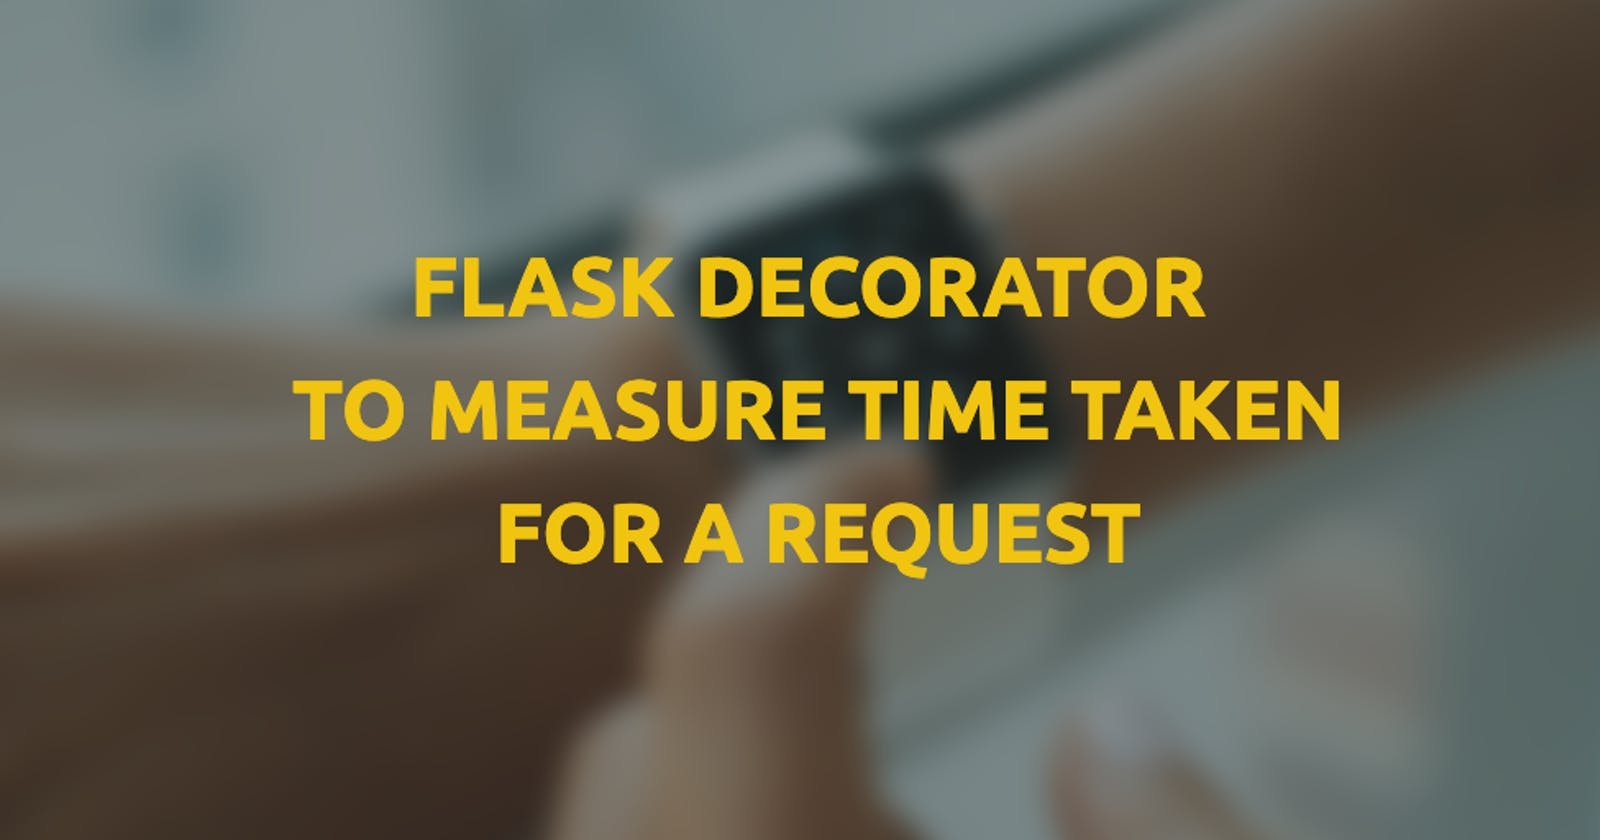 Flask decorator to measure time taken for a request